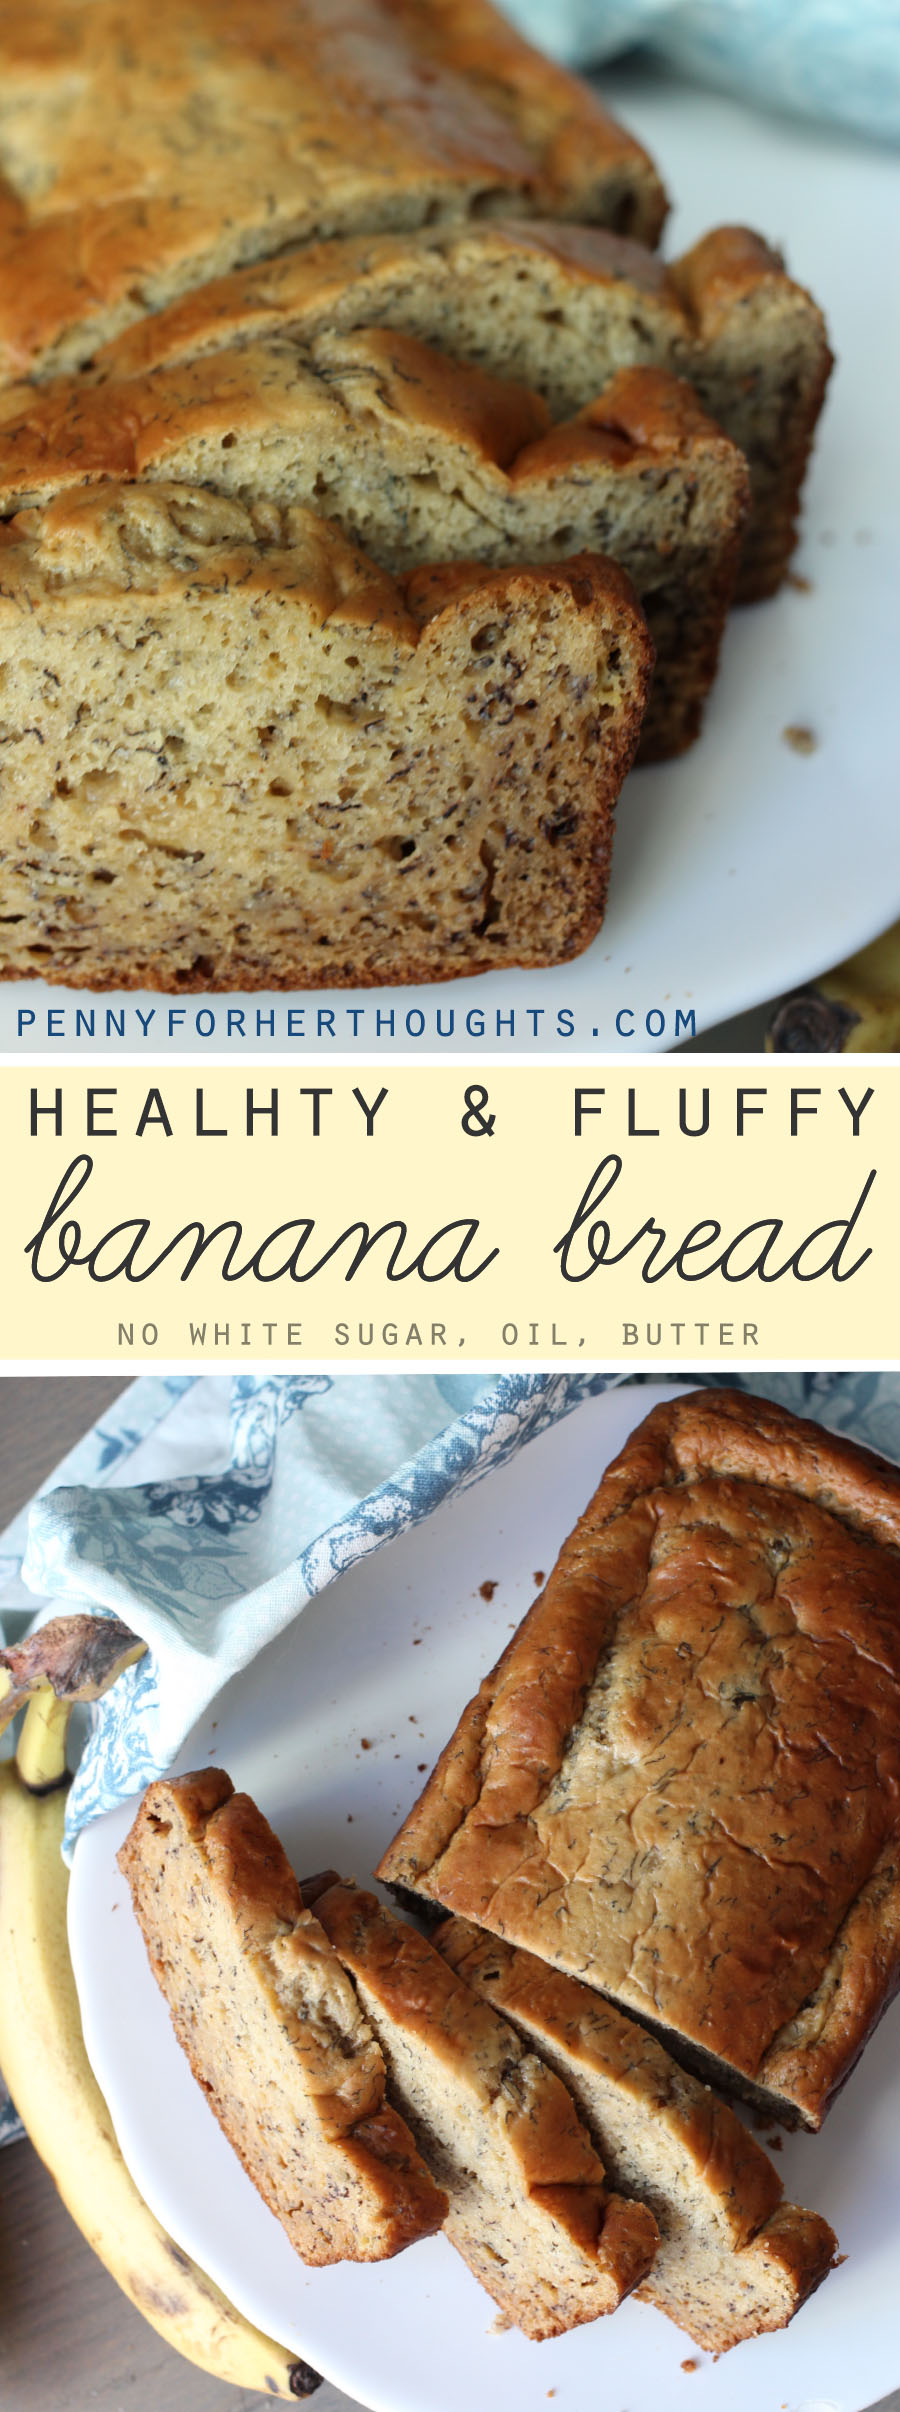 Healthy Fluffy Banana Bread - no white sugar, butter, oil